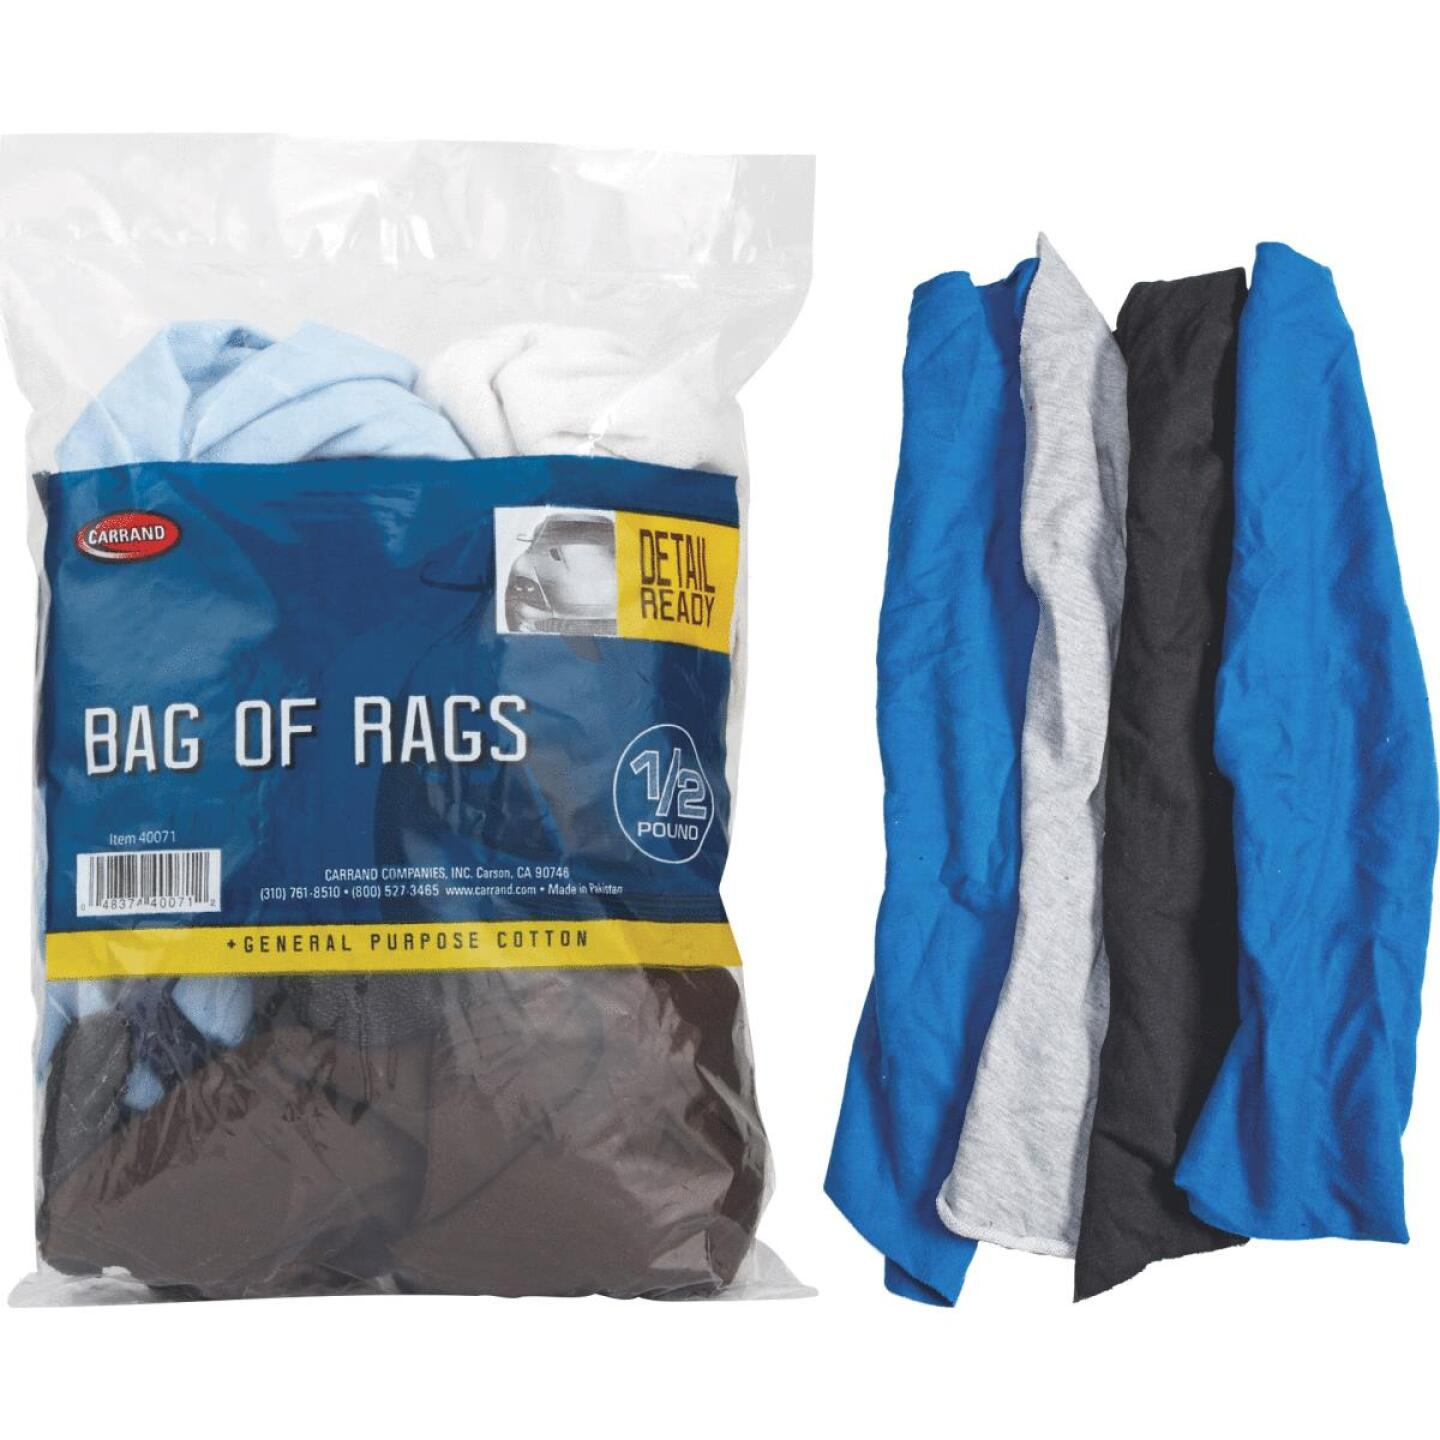 Carrand 1/2 Lb. Cleaning Rag Image 1